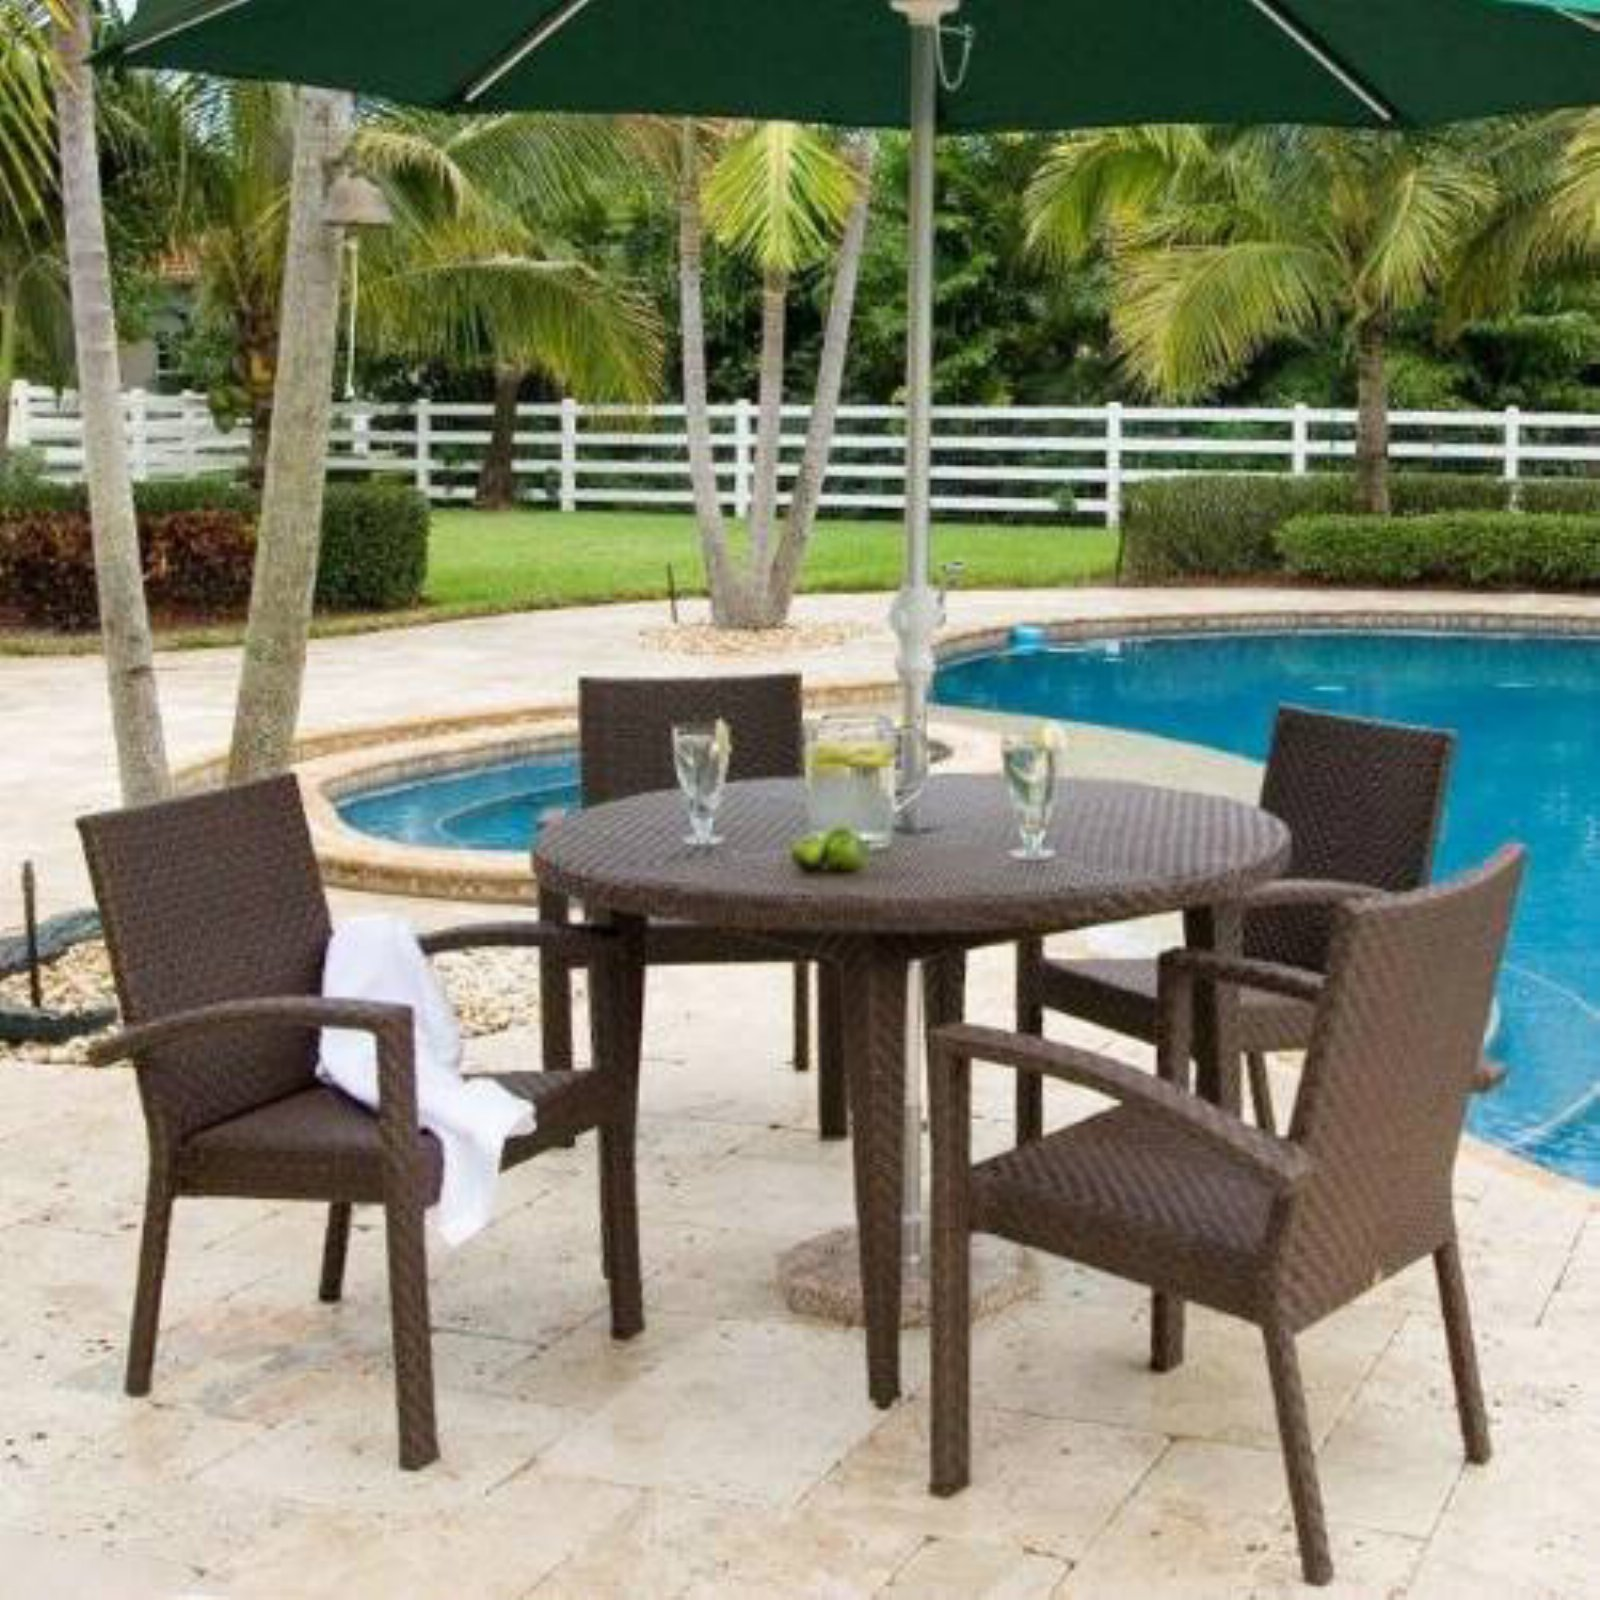 Hospitality Rattan Soho 5 Piece Patio Dining Set   Rehau Fiber Java Brown    Seats 4